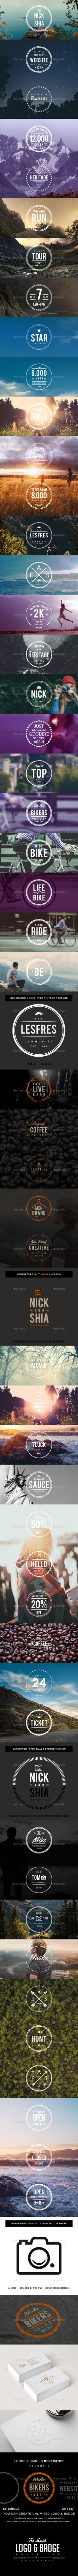 Logo And Badge Generator #design Download: http://graphicriver.net/item/logo-and-badge-generator-volume-1/12669126?ref=ksioks